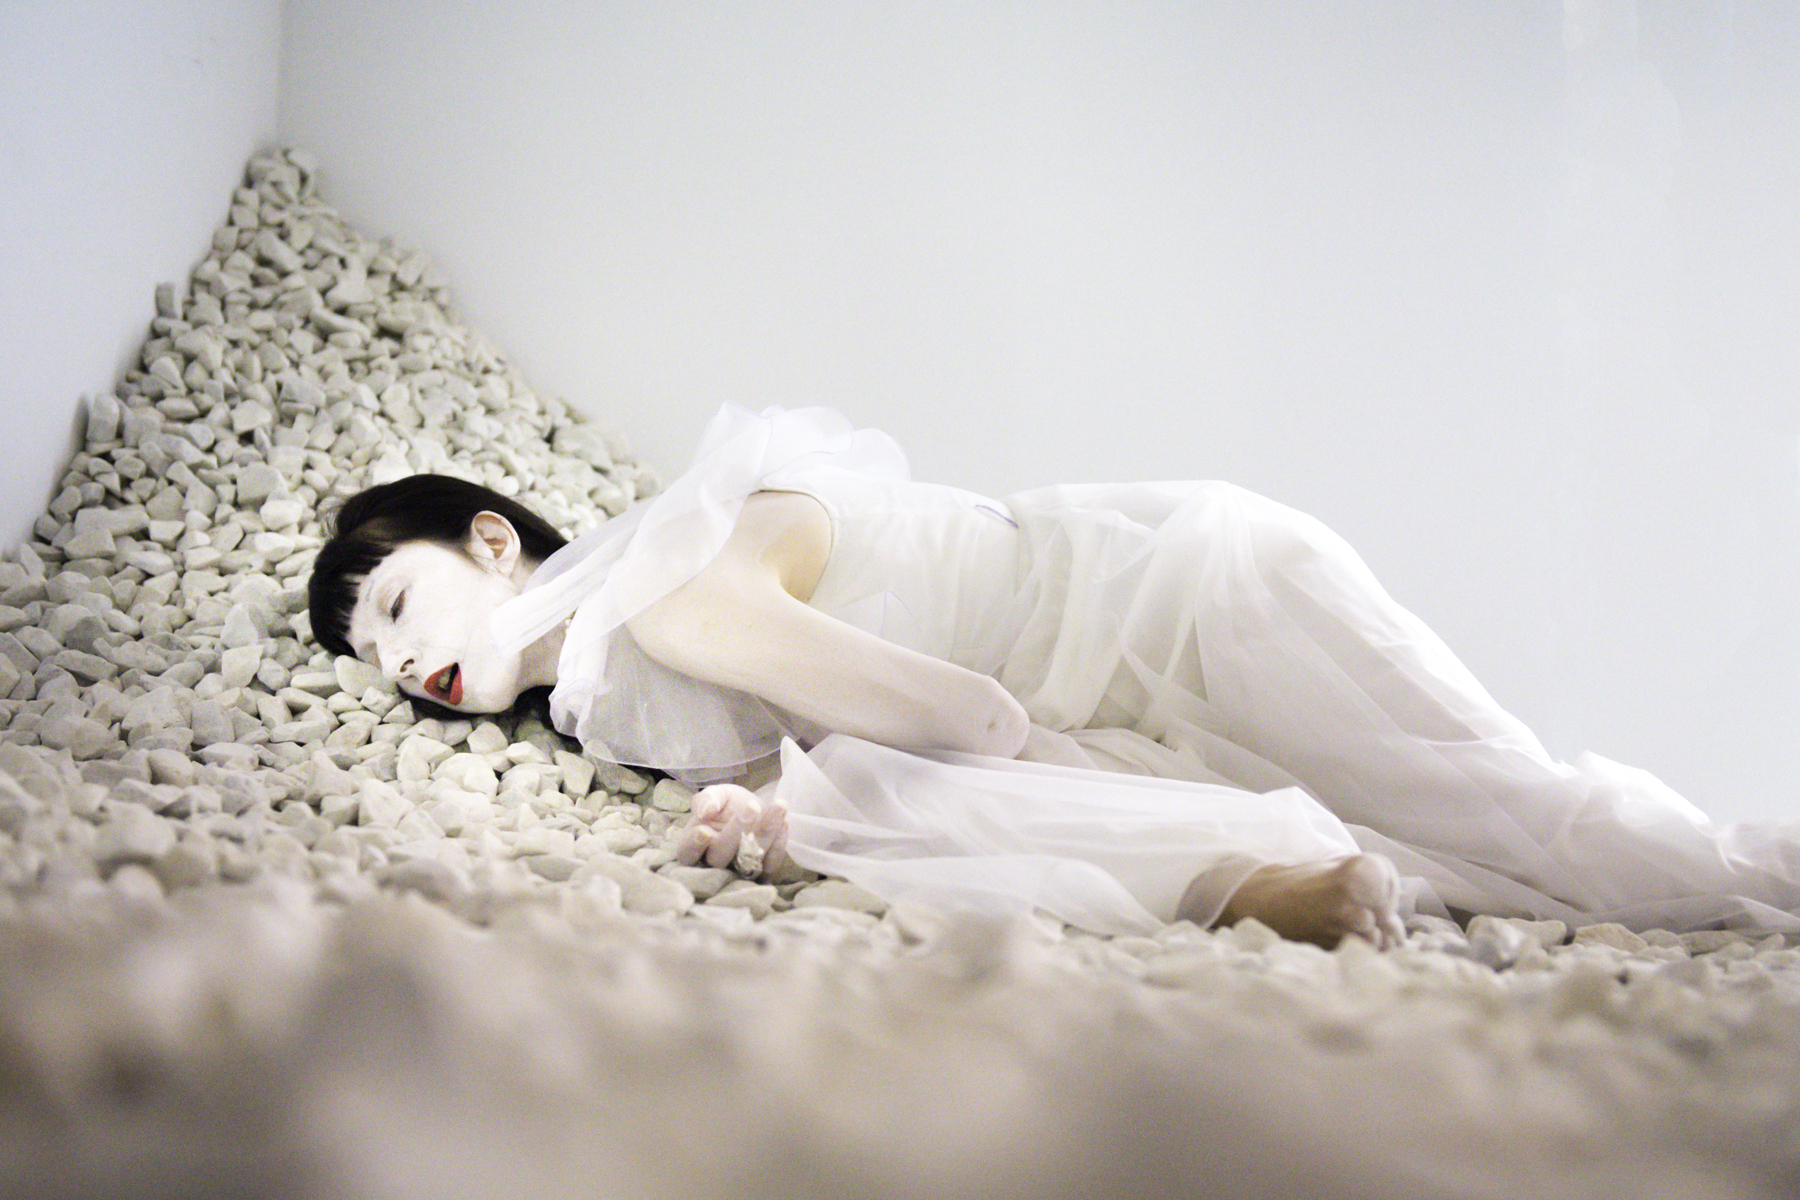 PASSAGE, at Ise Cultural Foundation,with artist Michele Beck (2013)  Photograph by Michael Blase